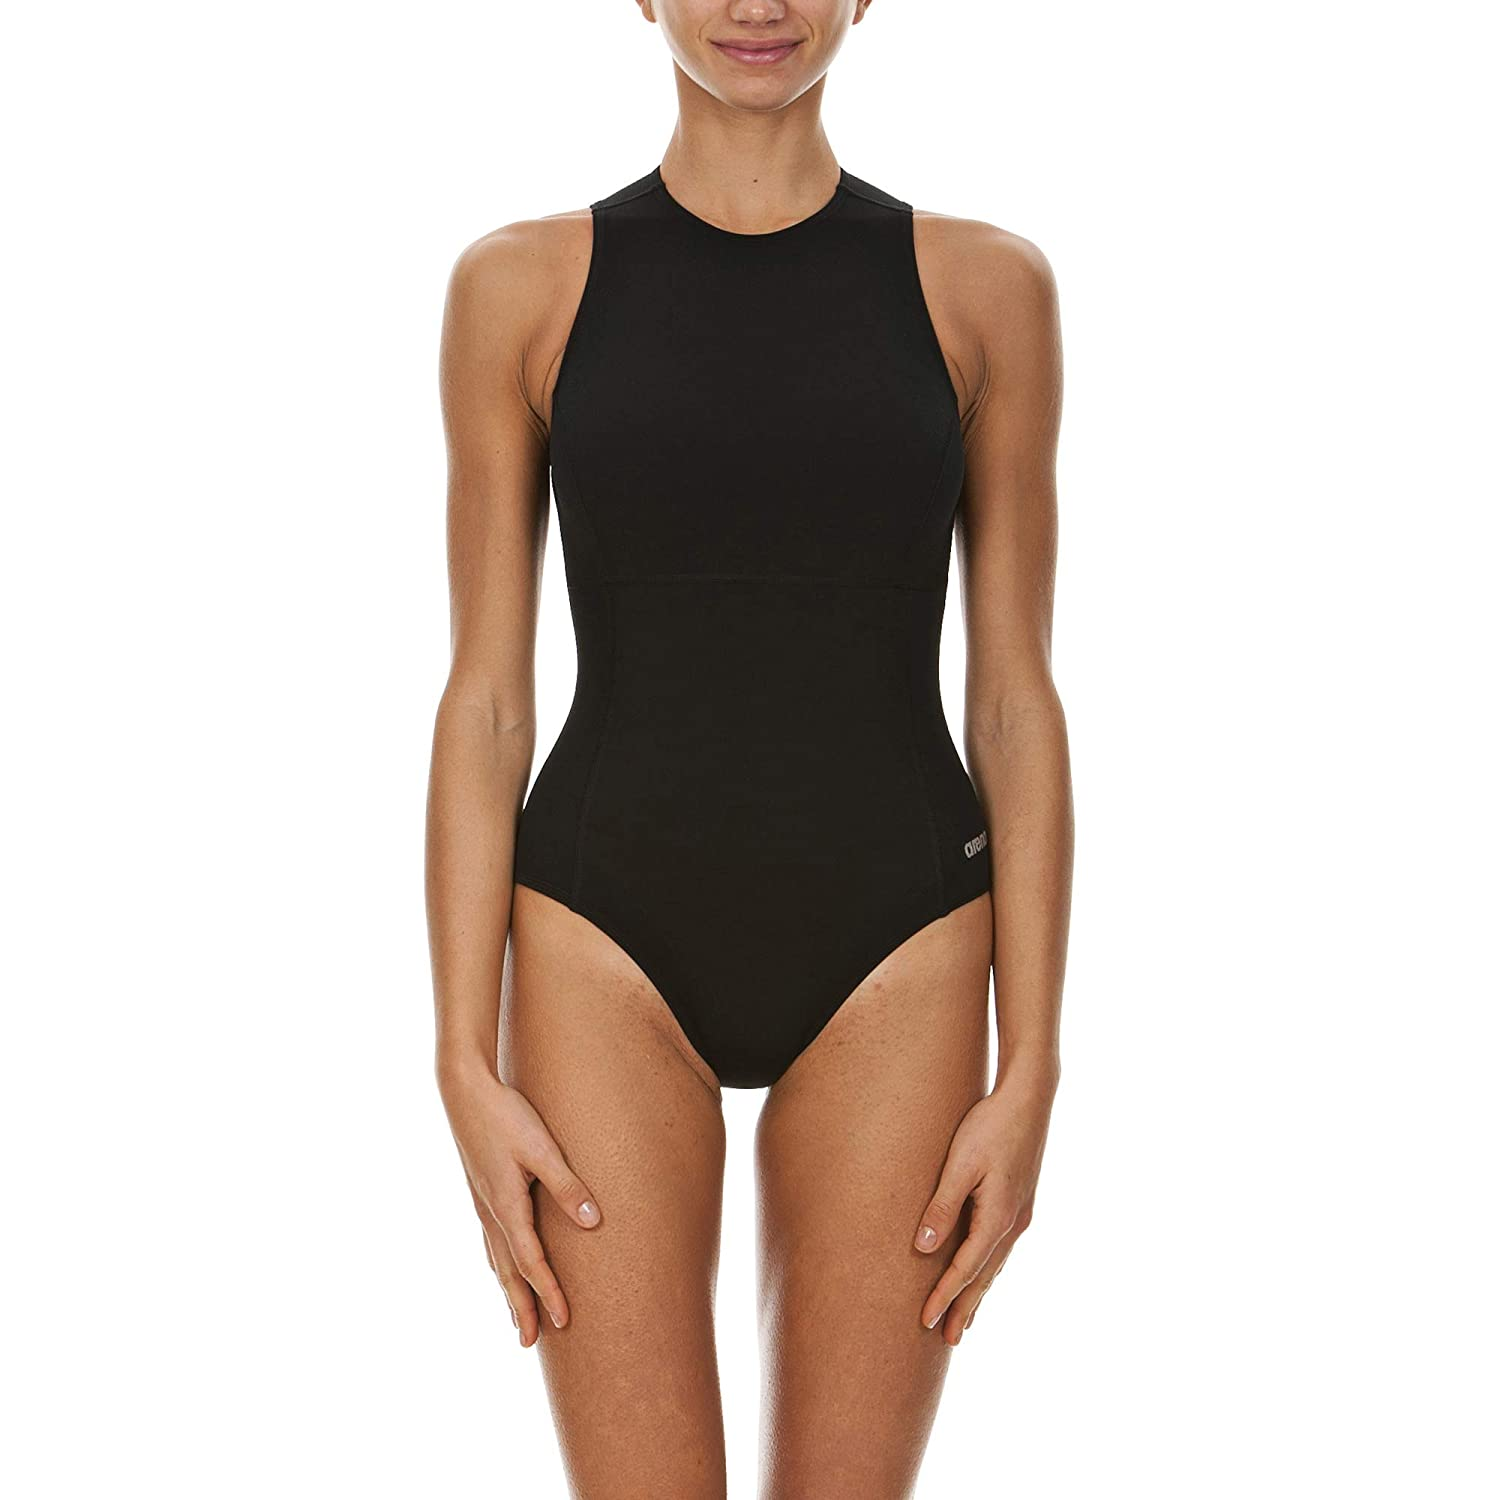 b93100f749 Amazon.com : Arena Women's Waterpolo Fl One Piece Swimsuit : Athletic One  Piece Swimsuits : Clothing